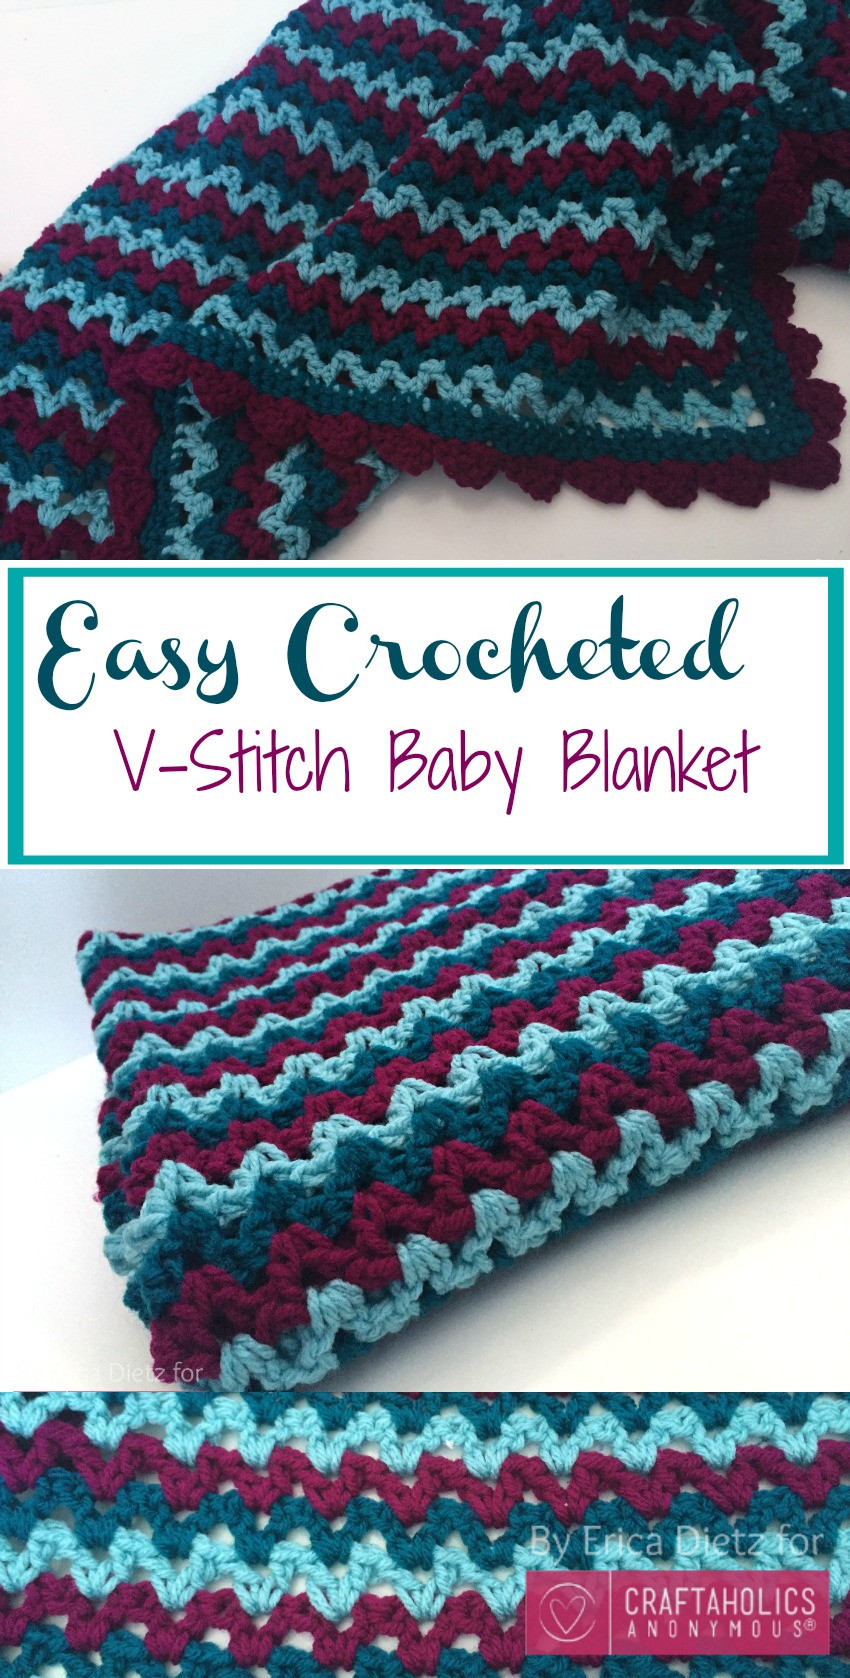 Crochet Stitches for Baby Blankets Lovely Craftaholics Anonymous Of Amazing 45 Pics Crochet Stitches for Baby Blankets